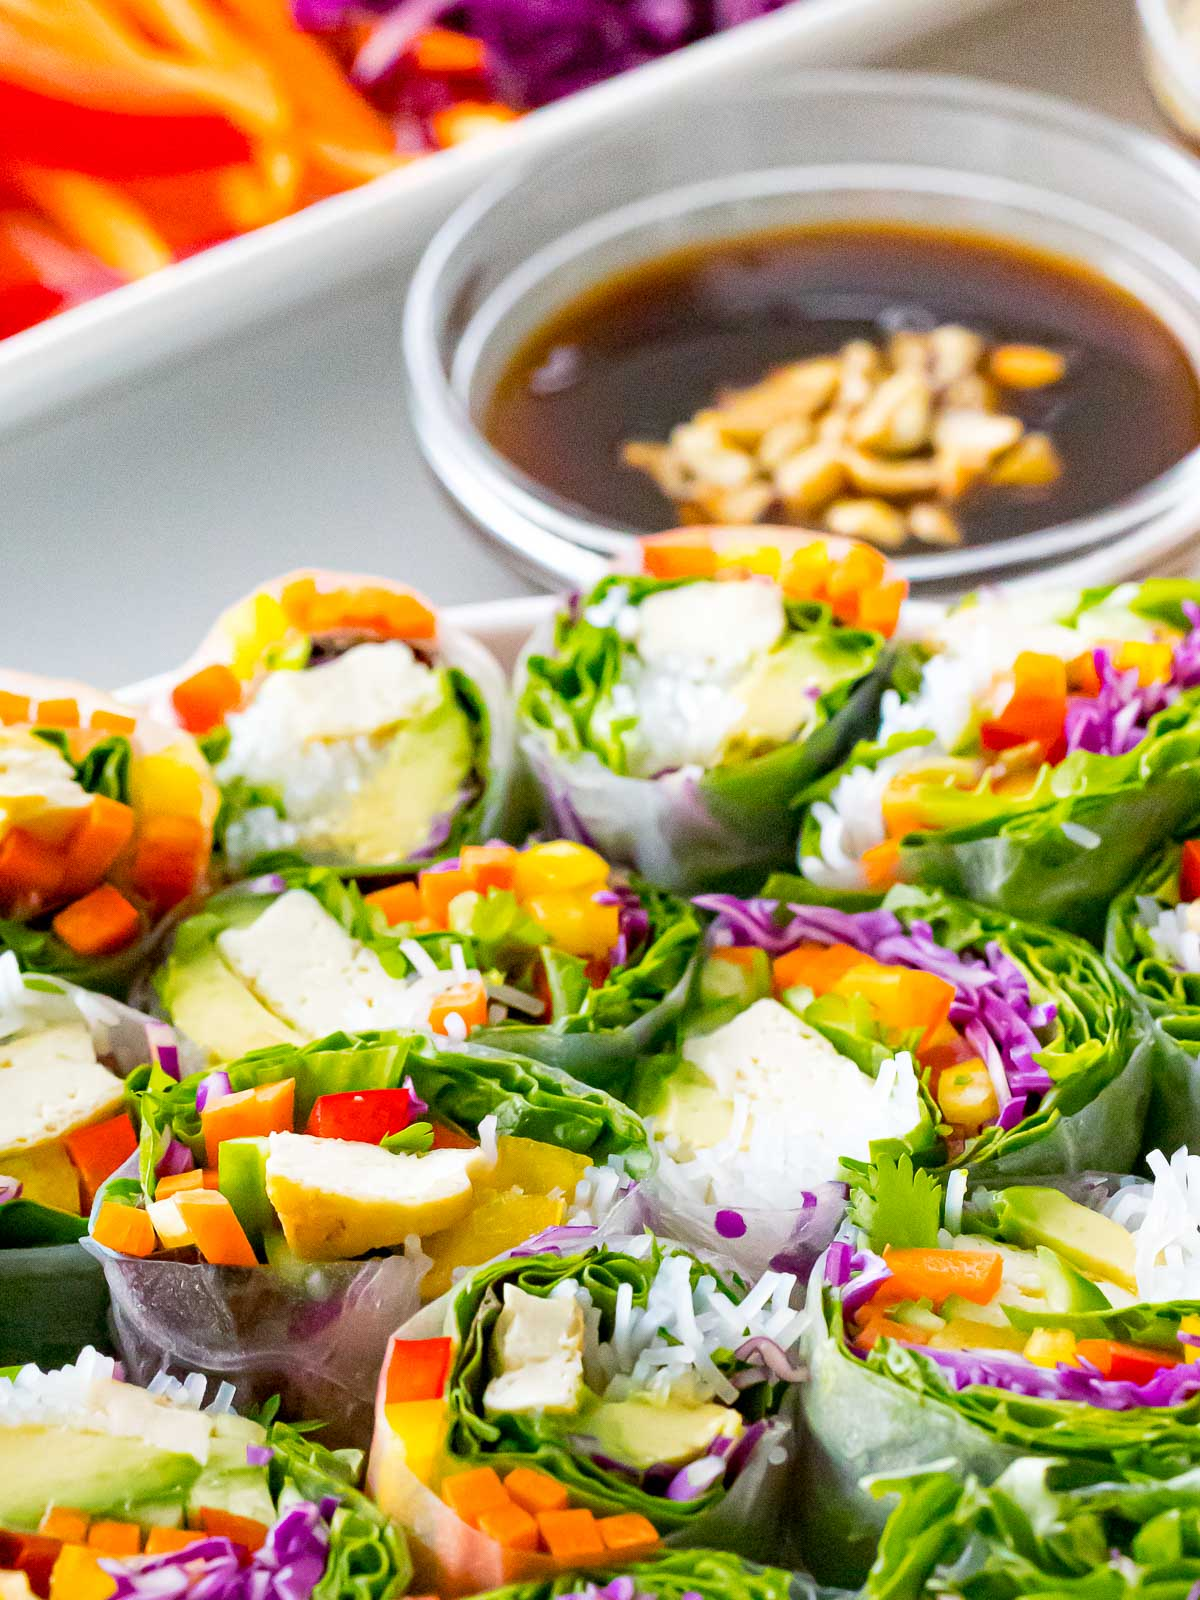 hoisin dipping sauce next to a plate of fresh spring rolls